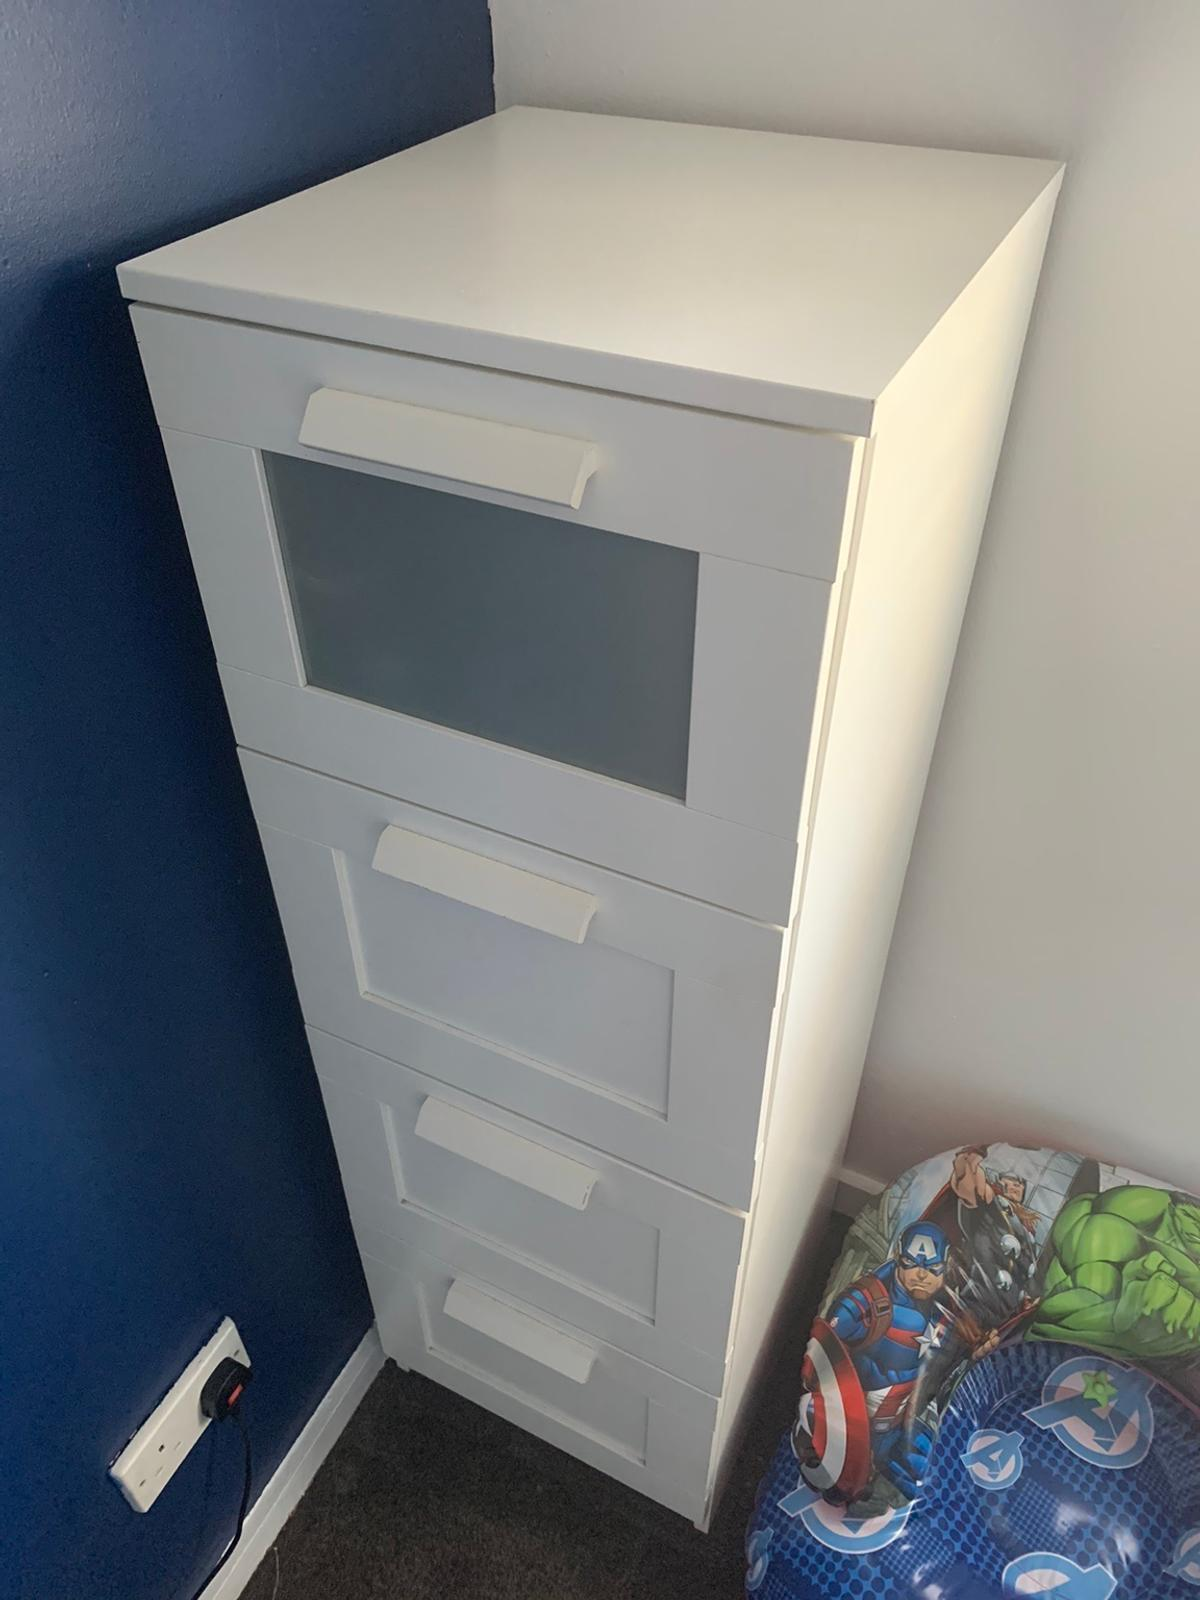 Ikea Brimnes Drawers In B45 Birmingham For 30 00 For Sale Shpock